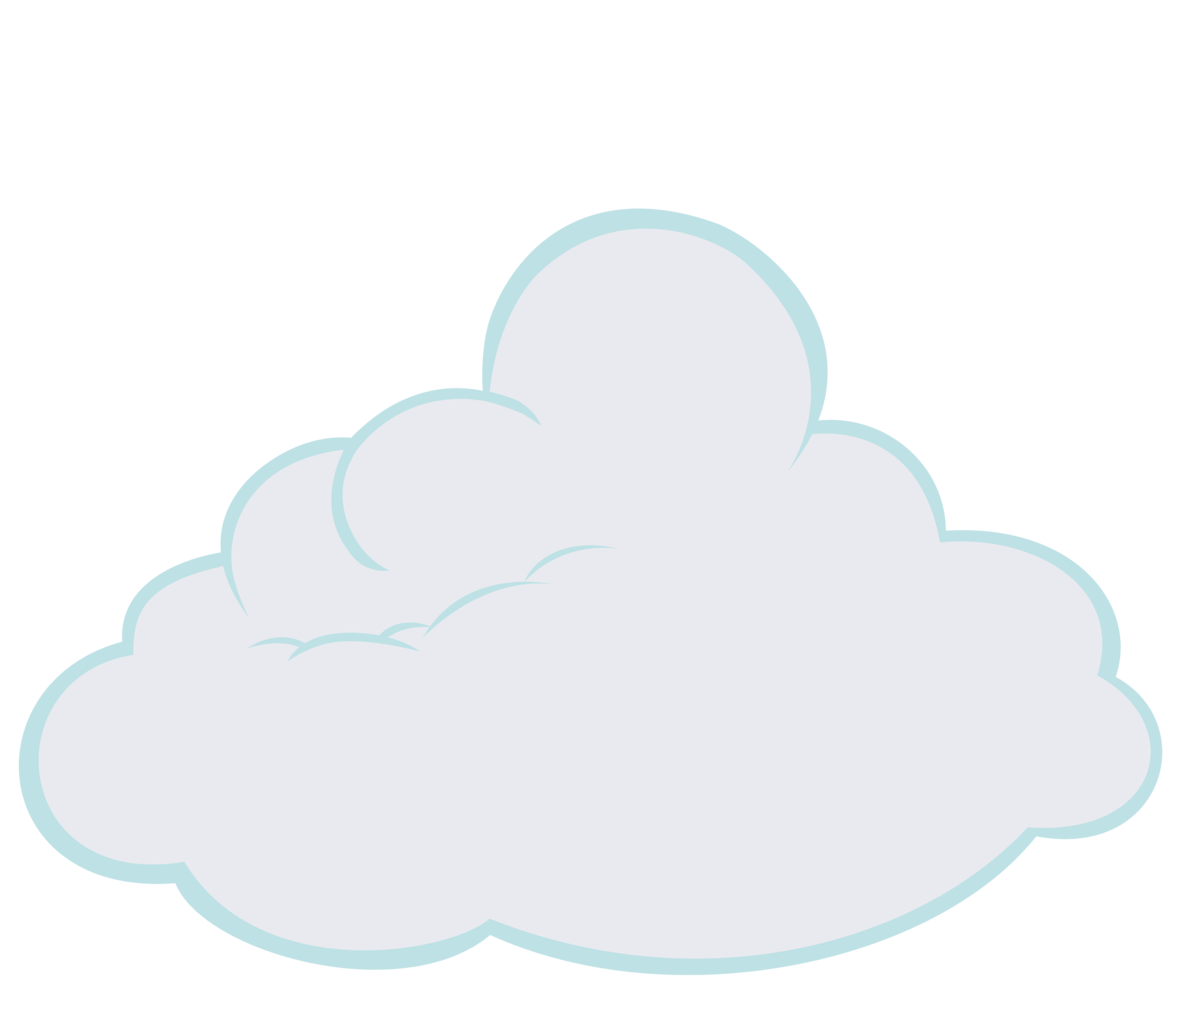 Cloud clipart curly. Collection of free clouding